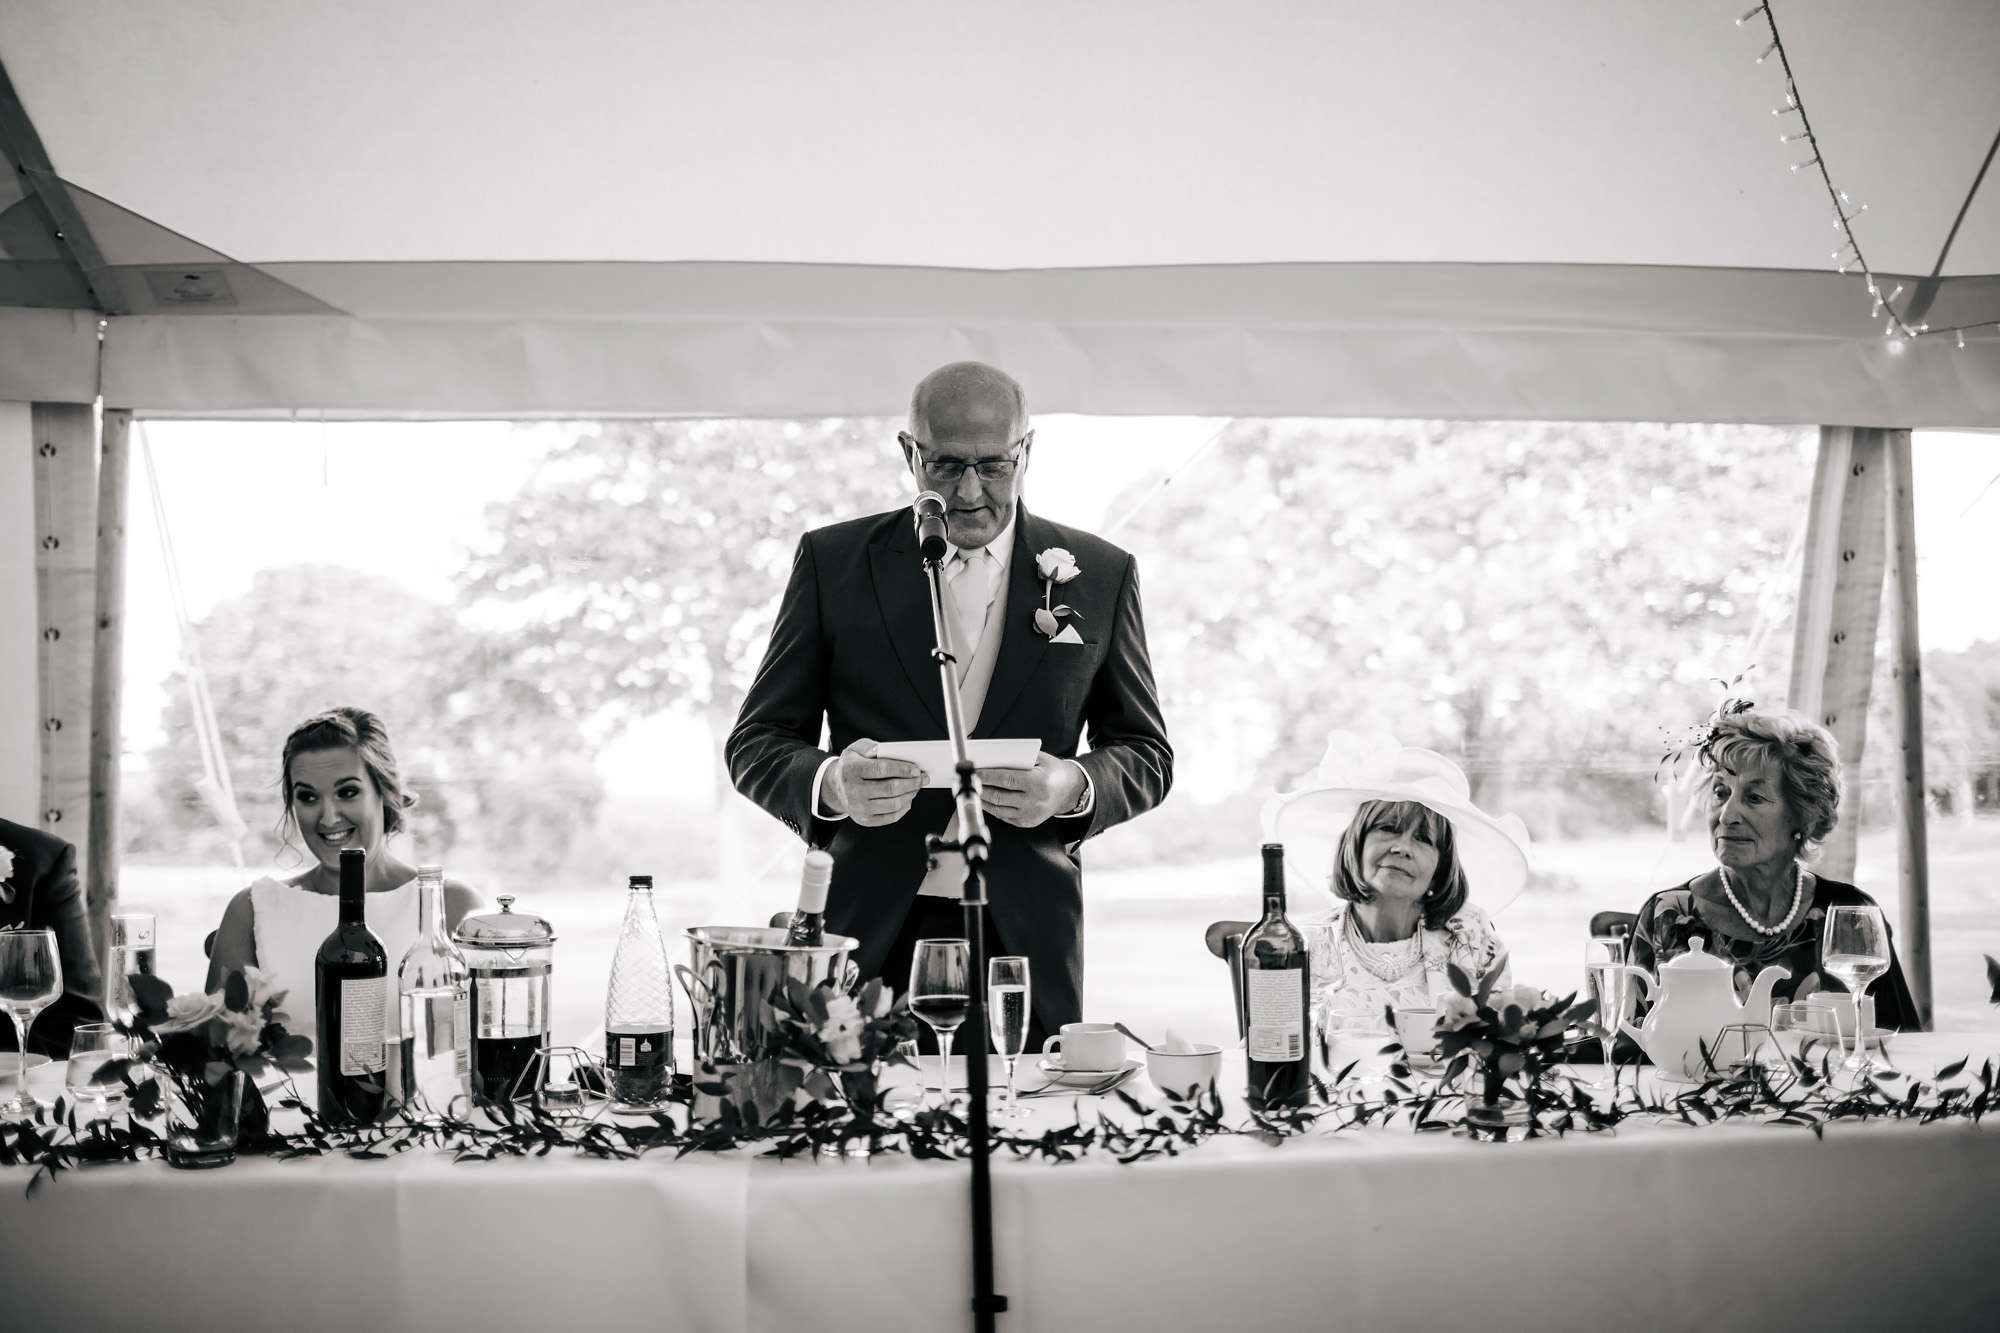 Bride's dad doing mid-speech at a wedding